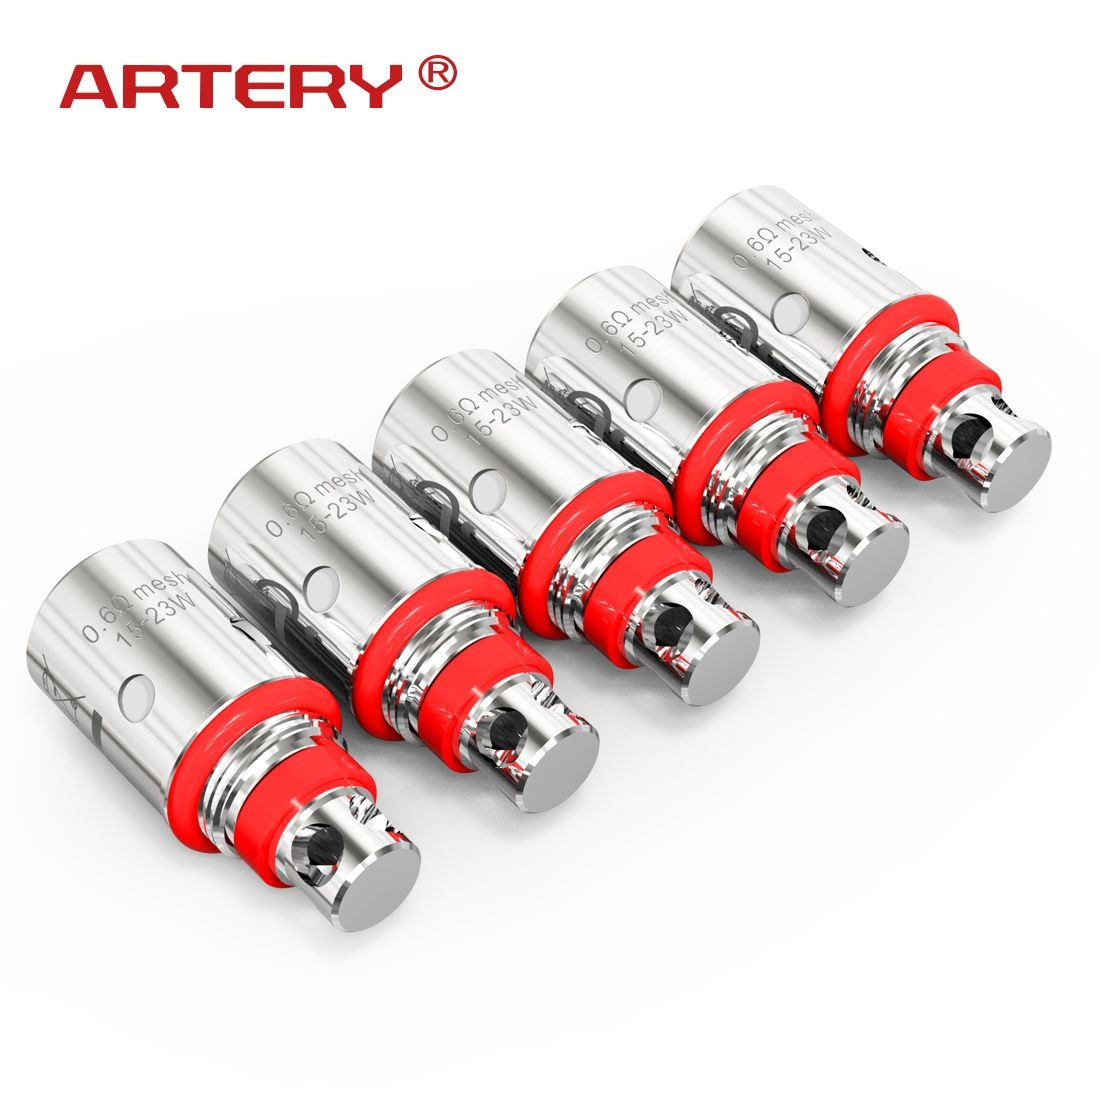 Artery Artery PAL-II Replacement Coil